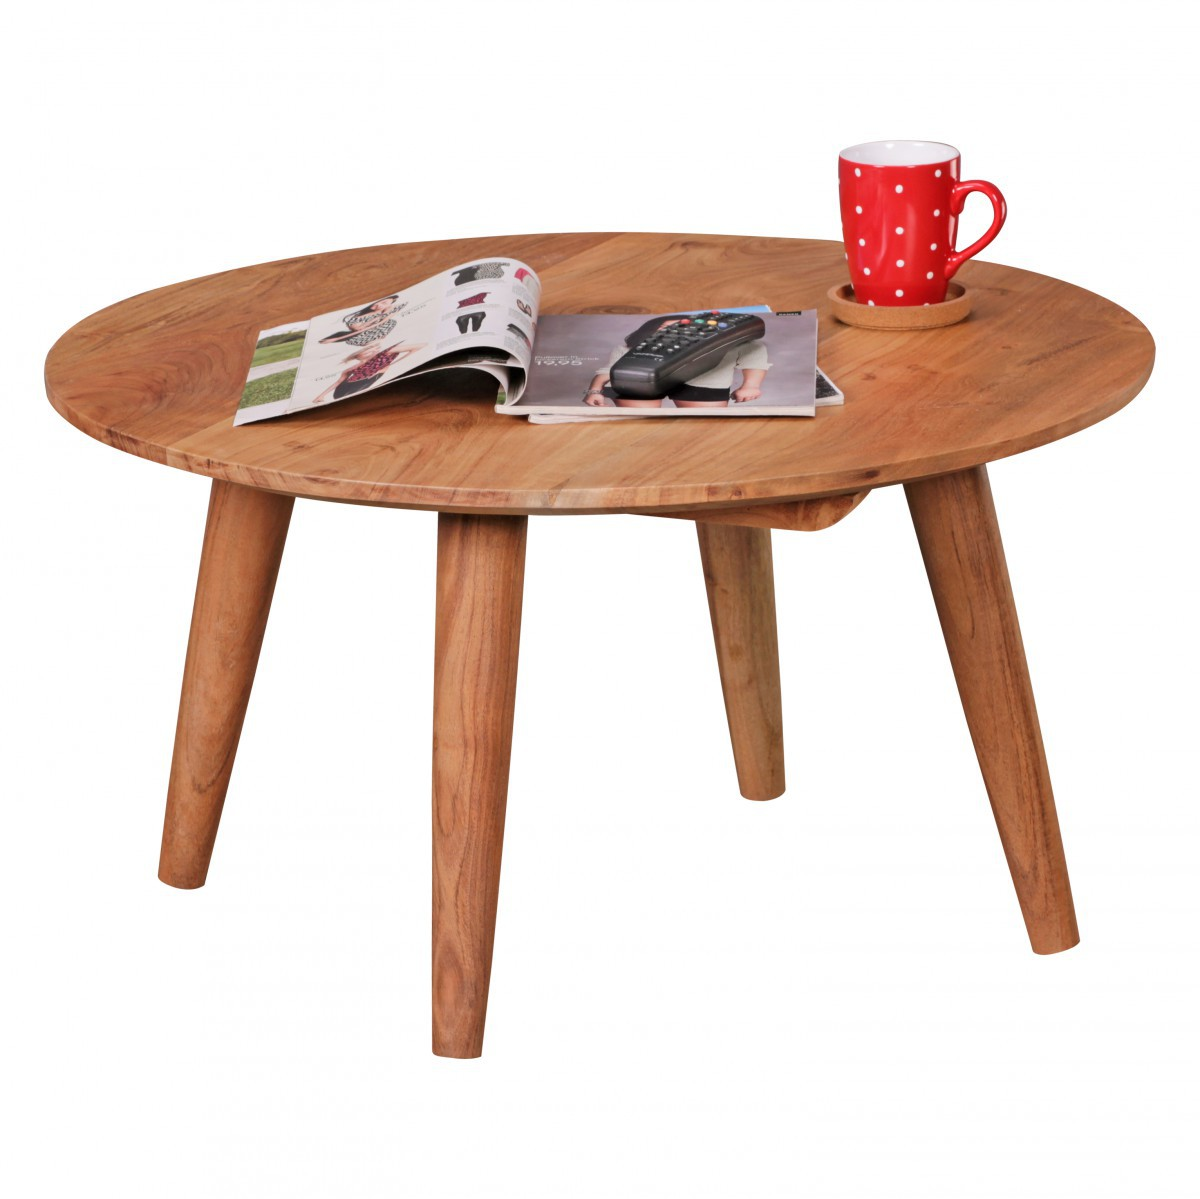 Finebuy table basse en bois massif acacia table basse - Table basse pliante bois ...